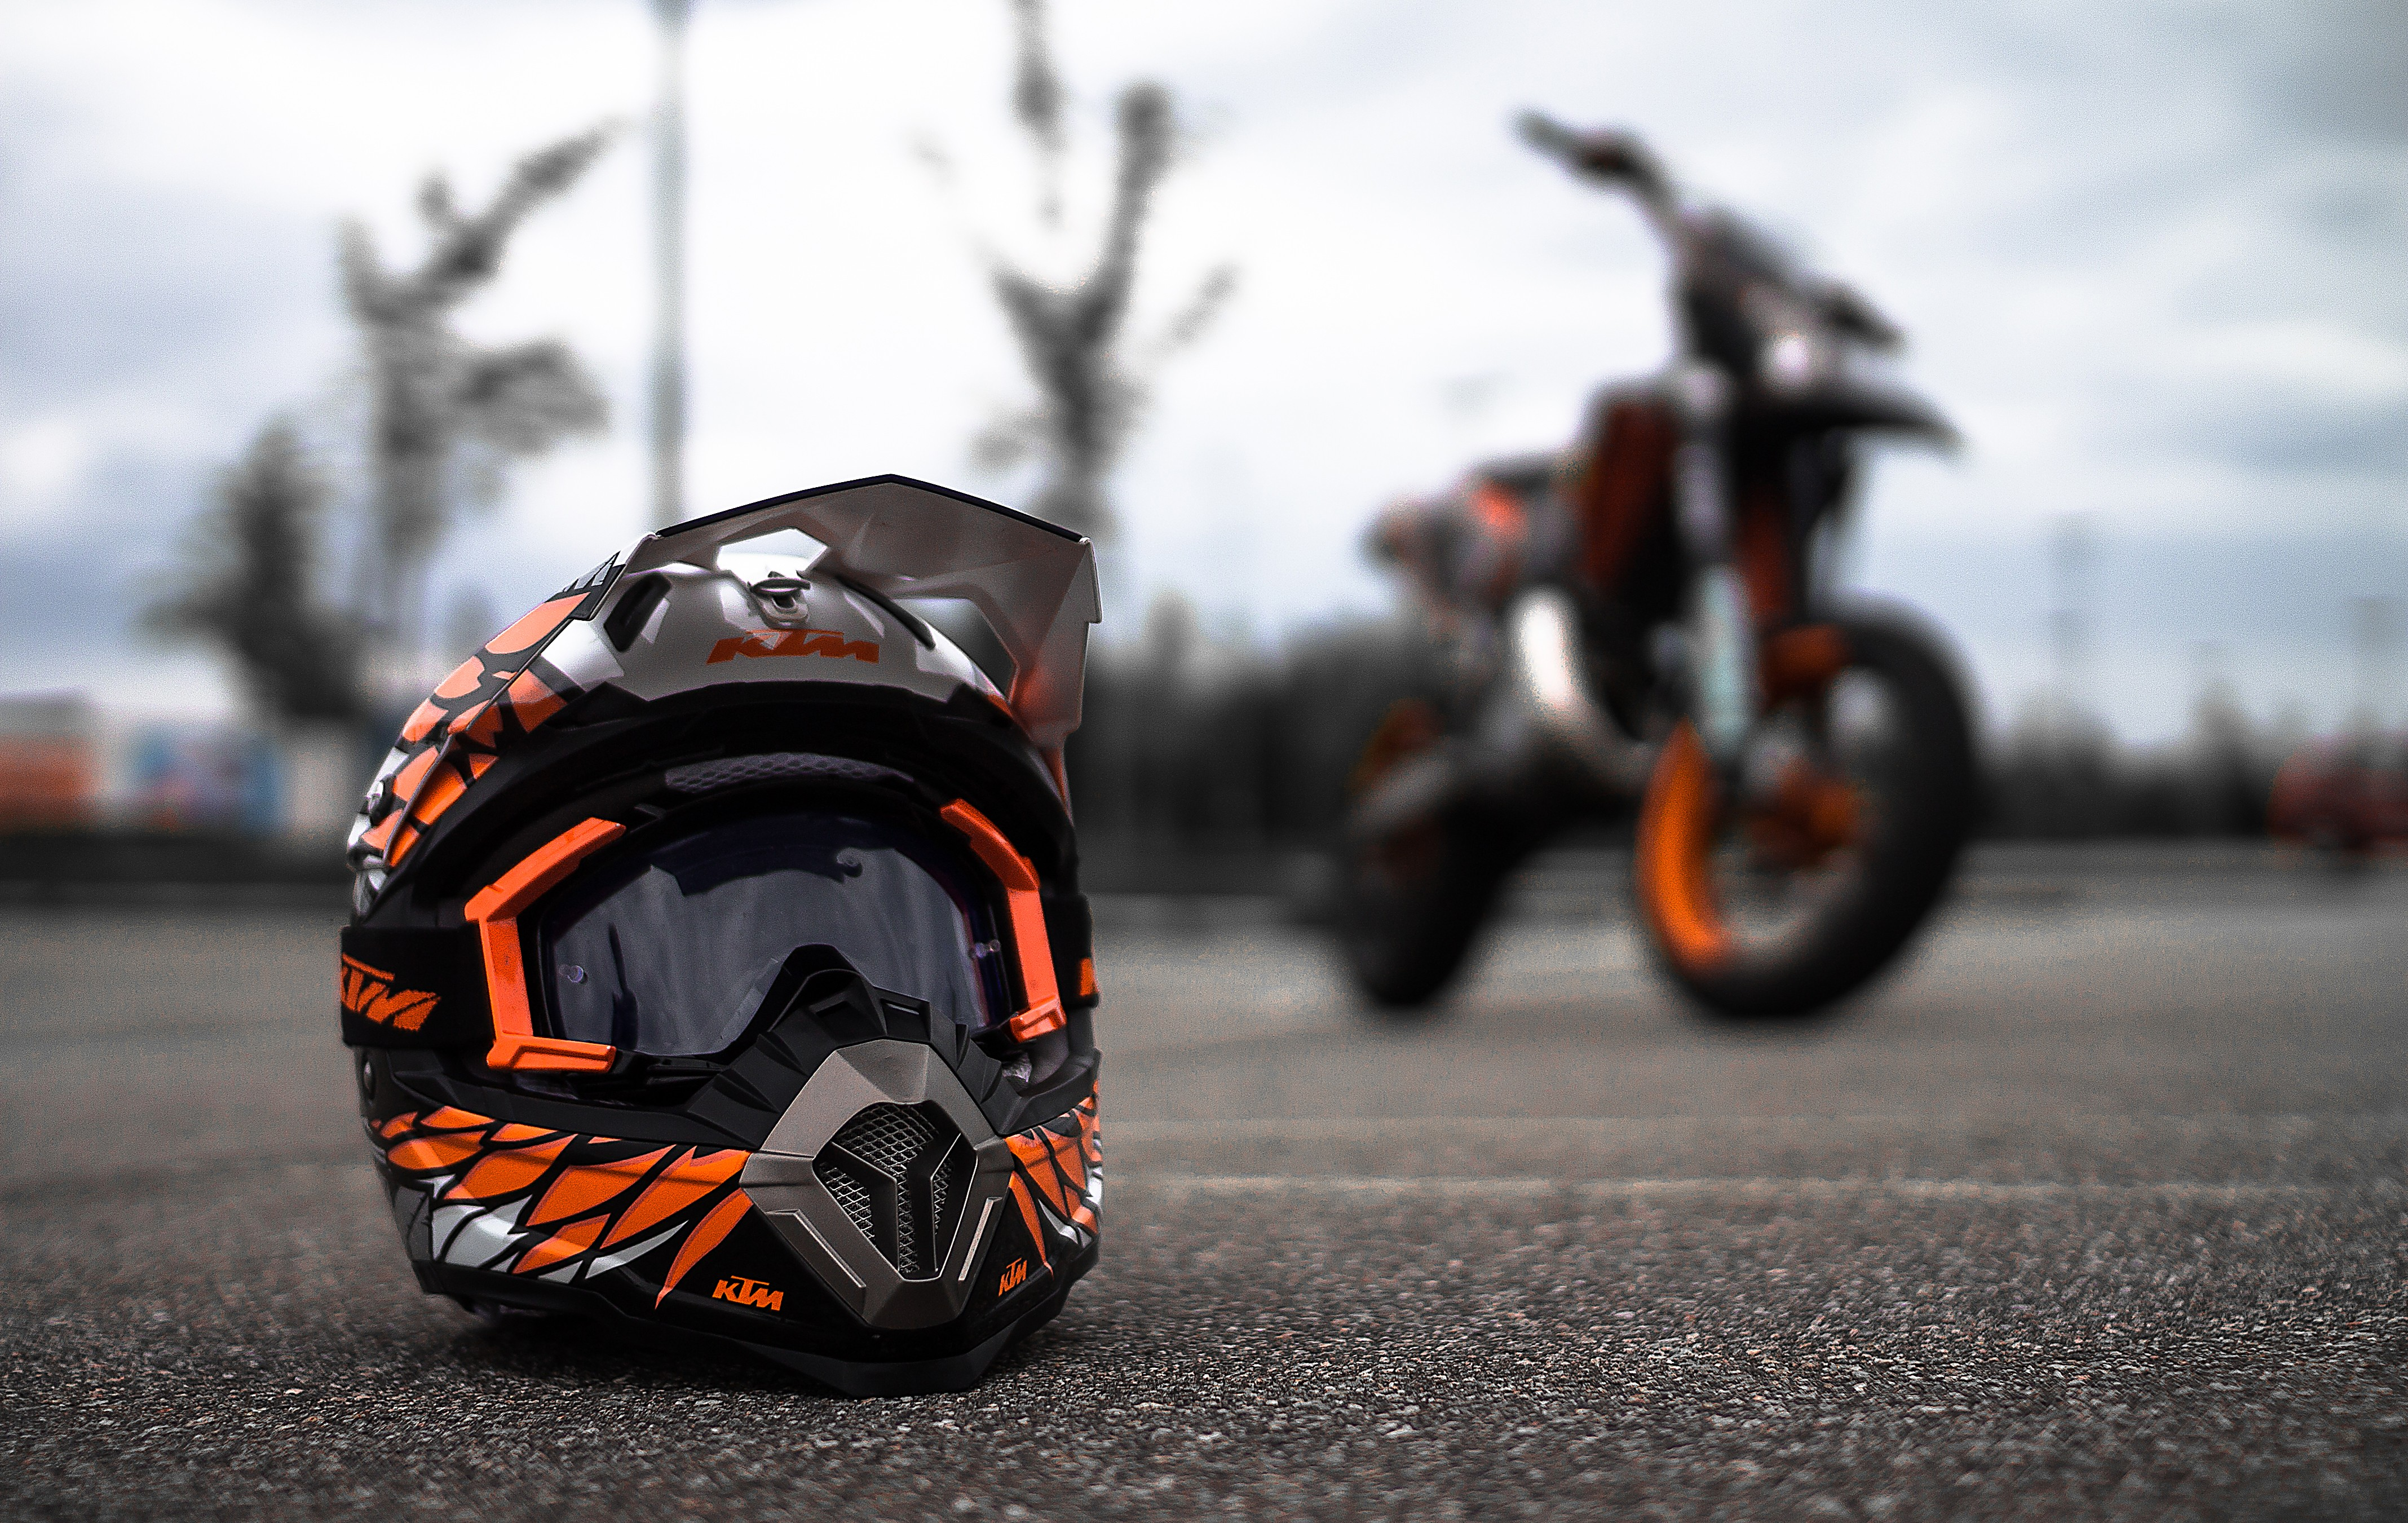 Cute Ipod Wallpapers For Walls 320x240 Ktm Helmet Apple Iphone Ipod Touch Galaxy Ace Hd